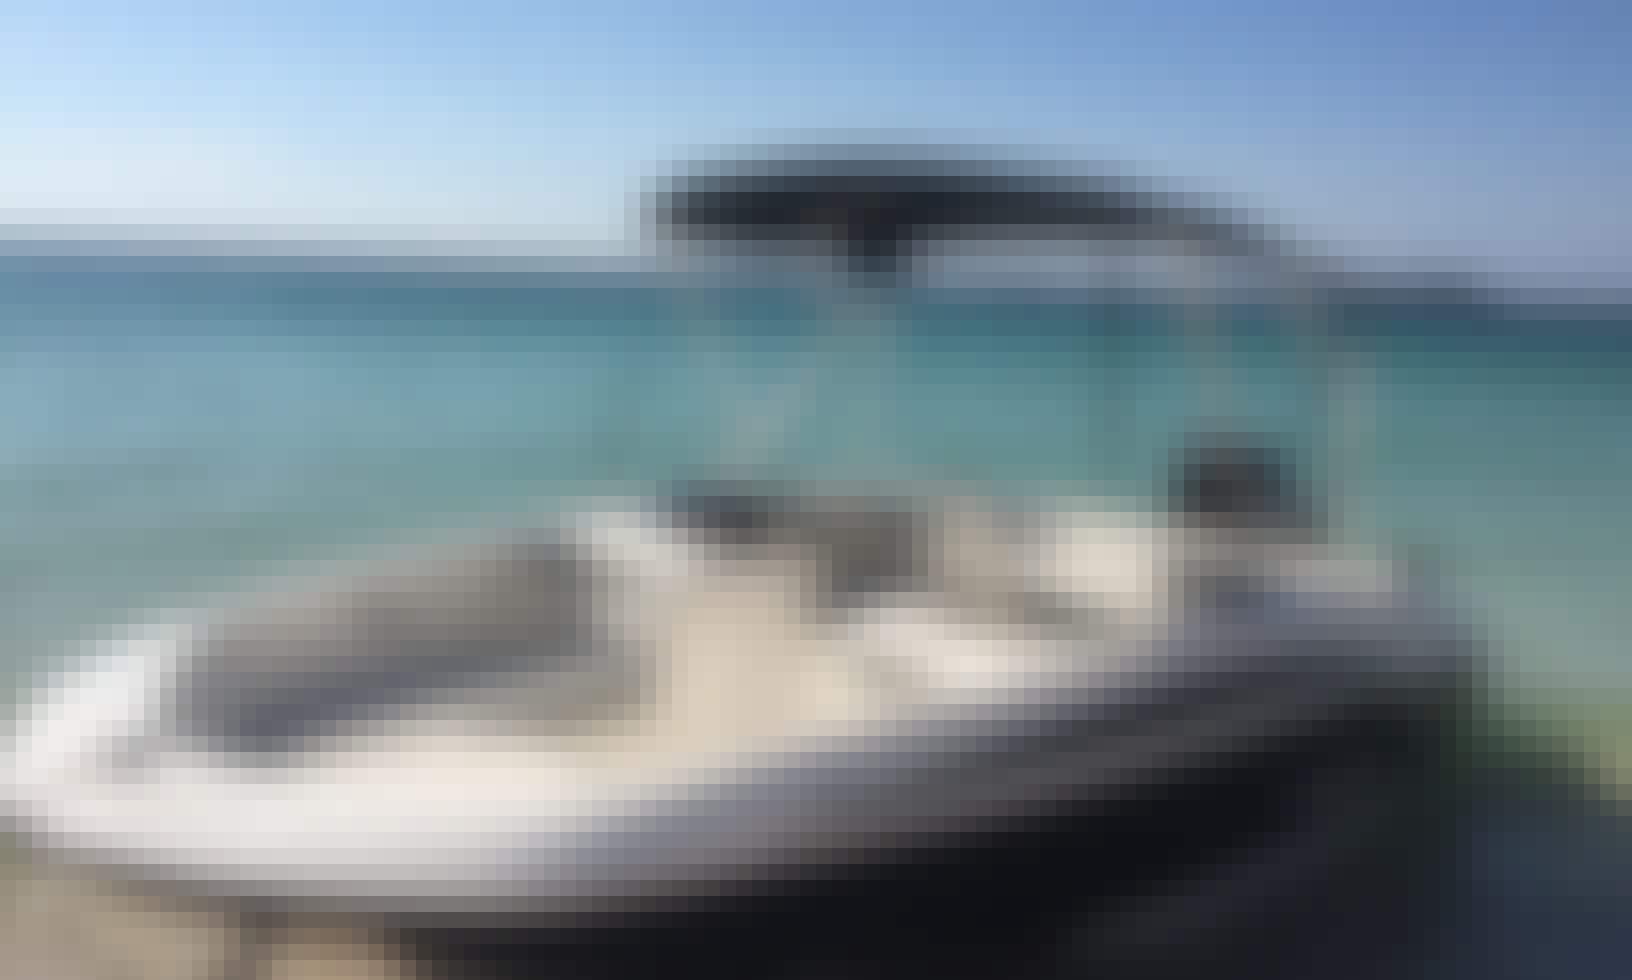 16' Bayliner Element Deck Boat for 6 Person in Sunny Isles Beach, Florida!